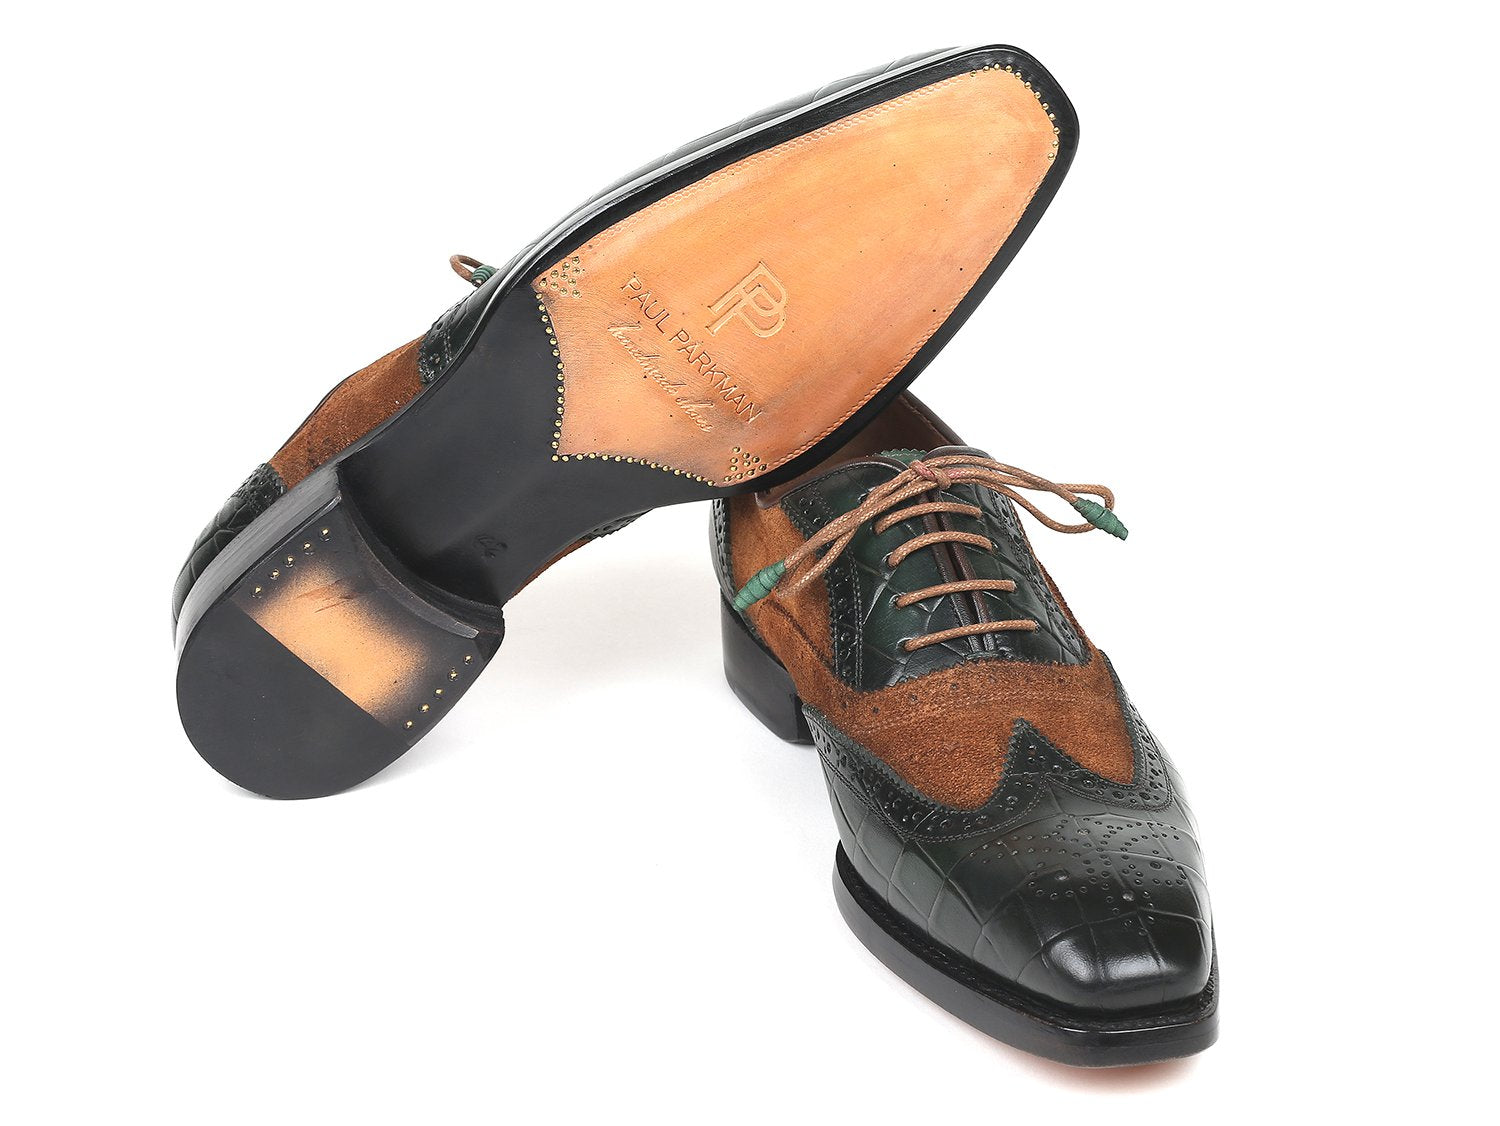 Paul Parkman Goodyear Welted Wingtip Oxfords Brown & Green (ID#9941-BWG)